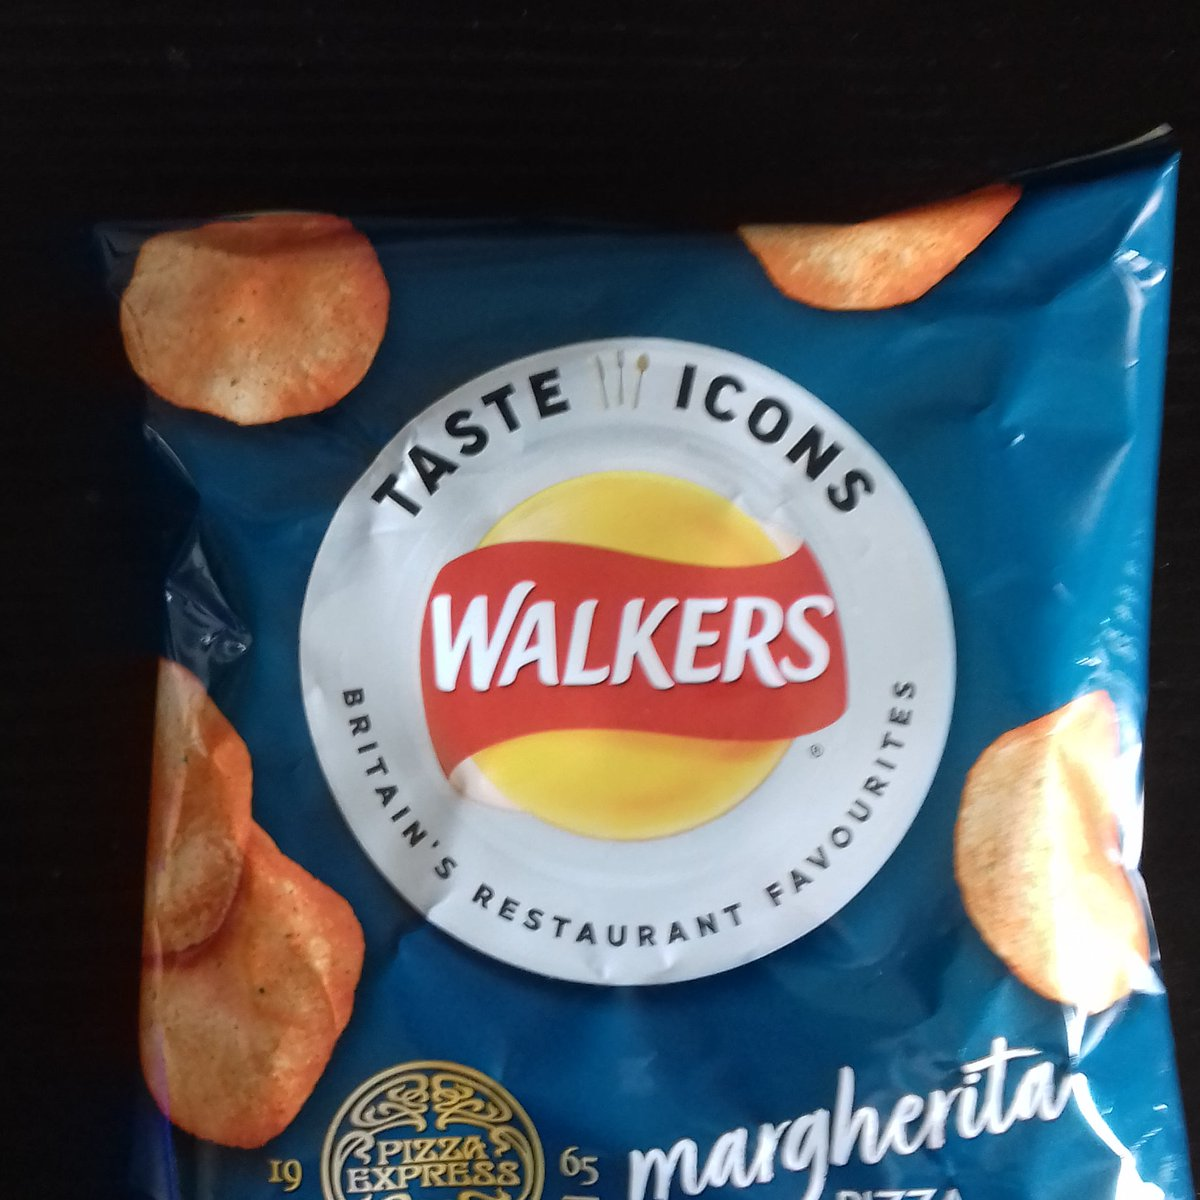 Another flavour to try out @walkers_crisps #margaritapizza #nomnomnom https://t.co/jUKRYrAdRJ